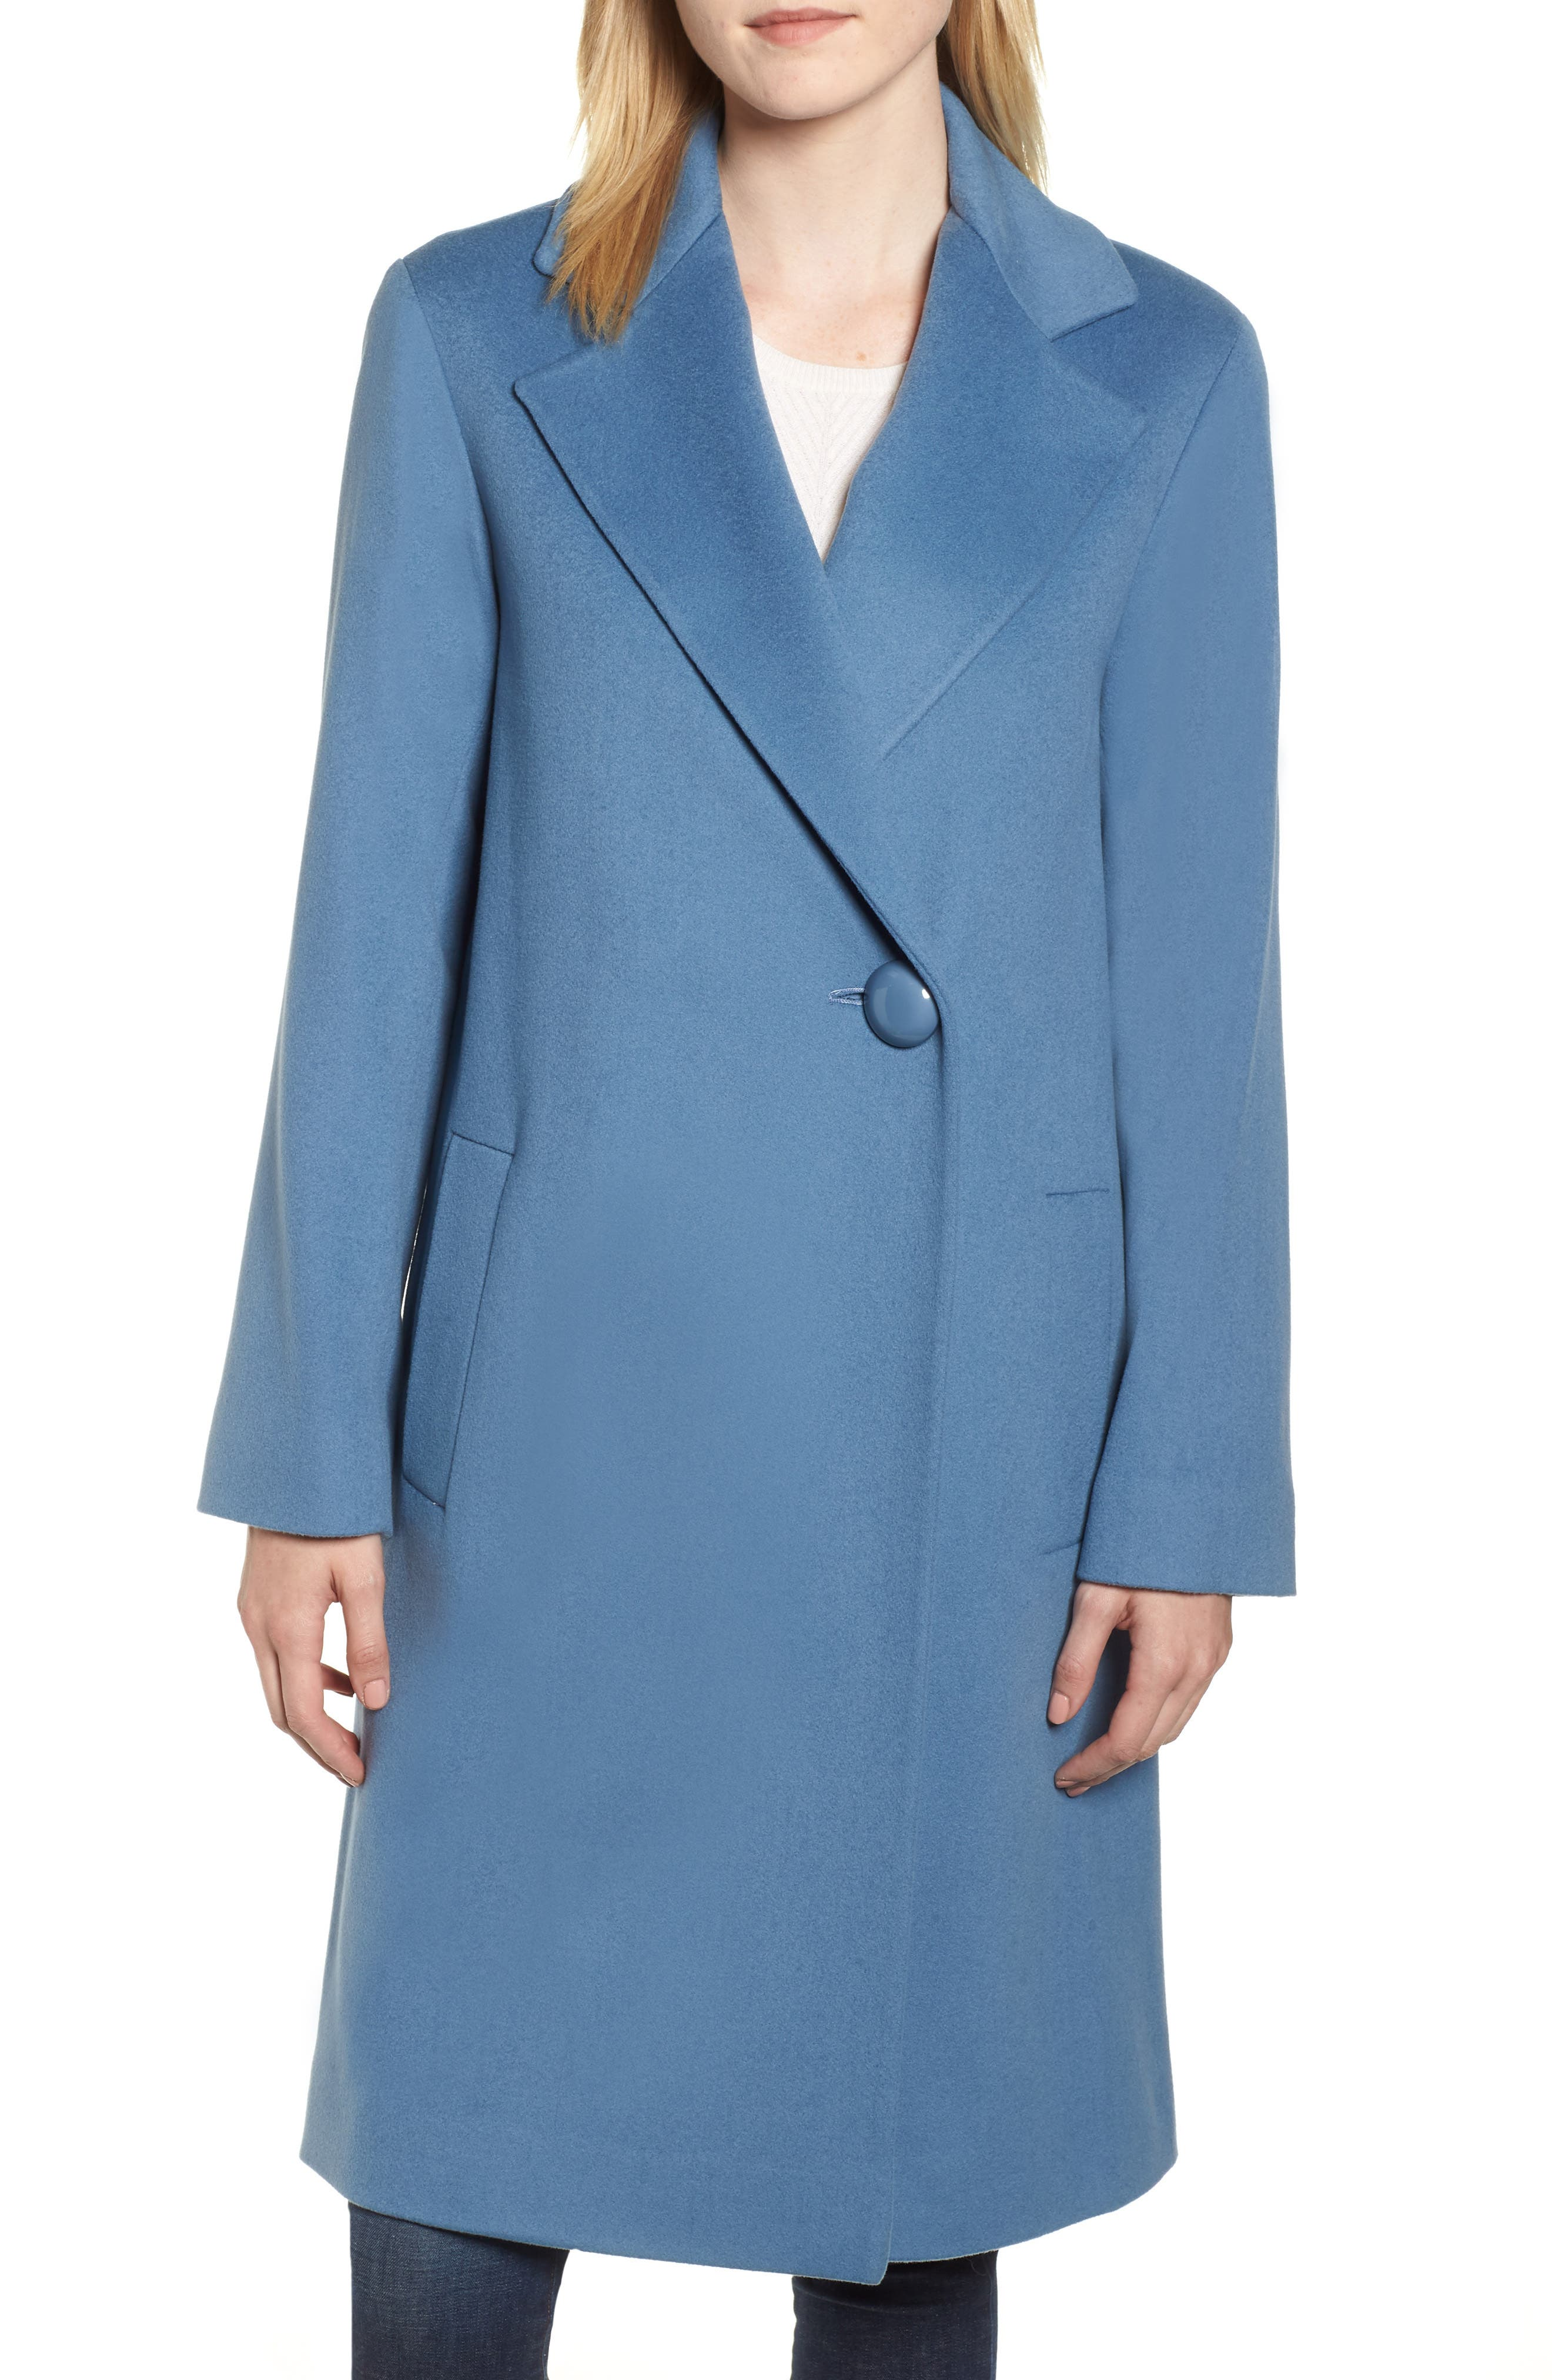 FLEURETTE, One-Button Loro Piana Wool Coat, Main thumbnail 1, color, CORNFLOWER